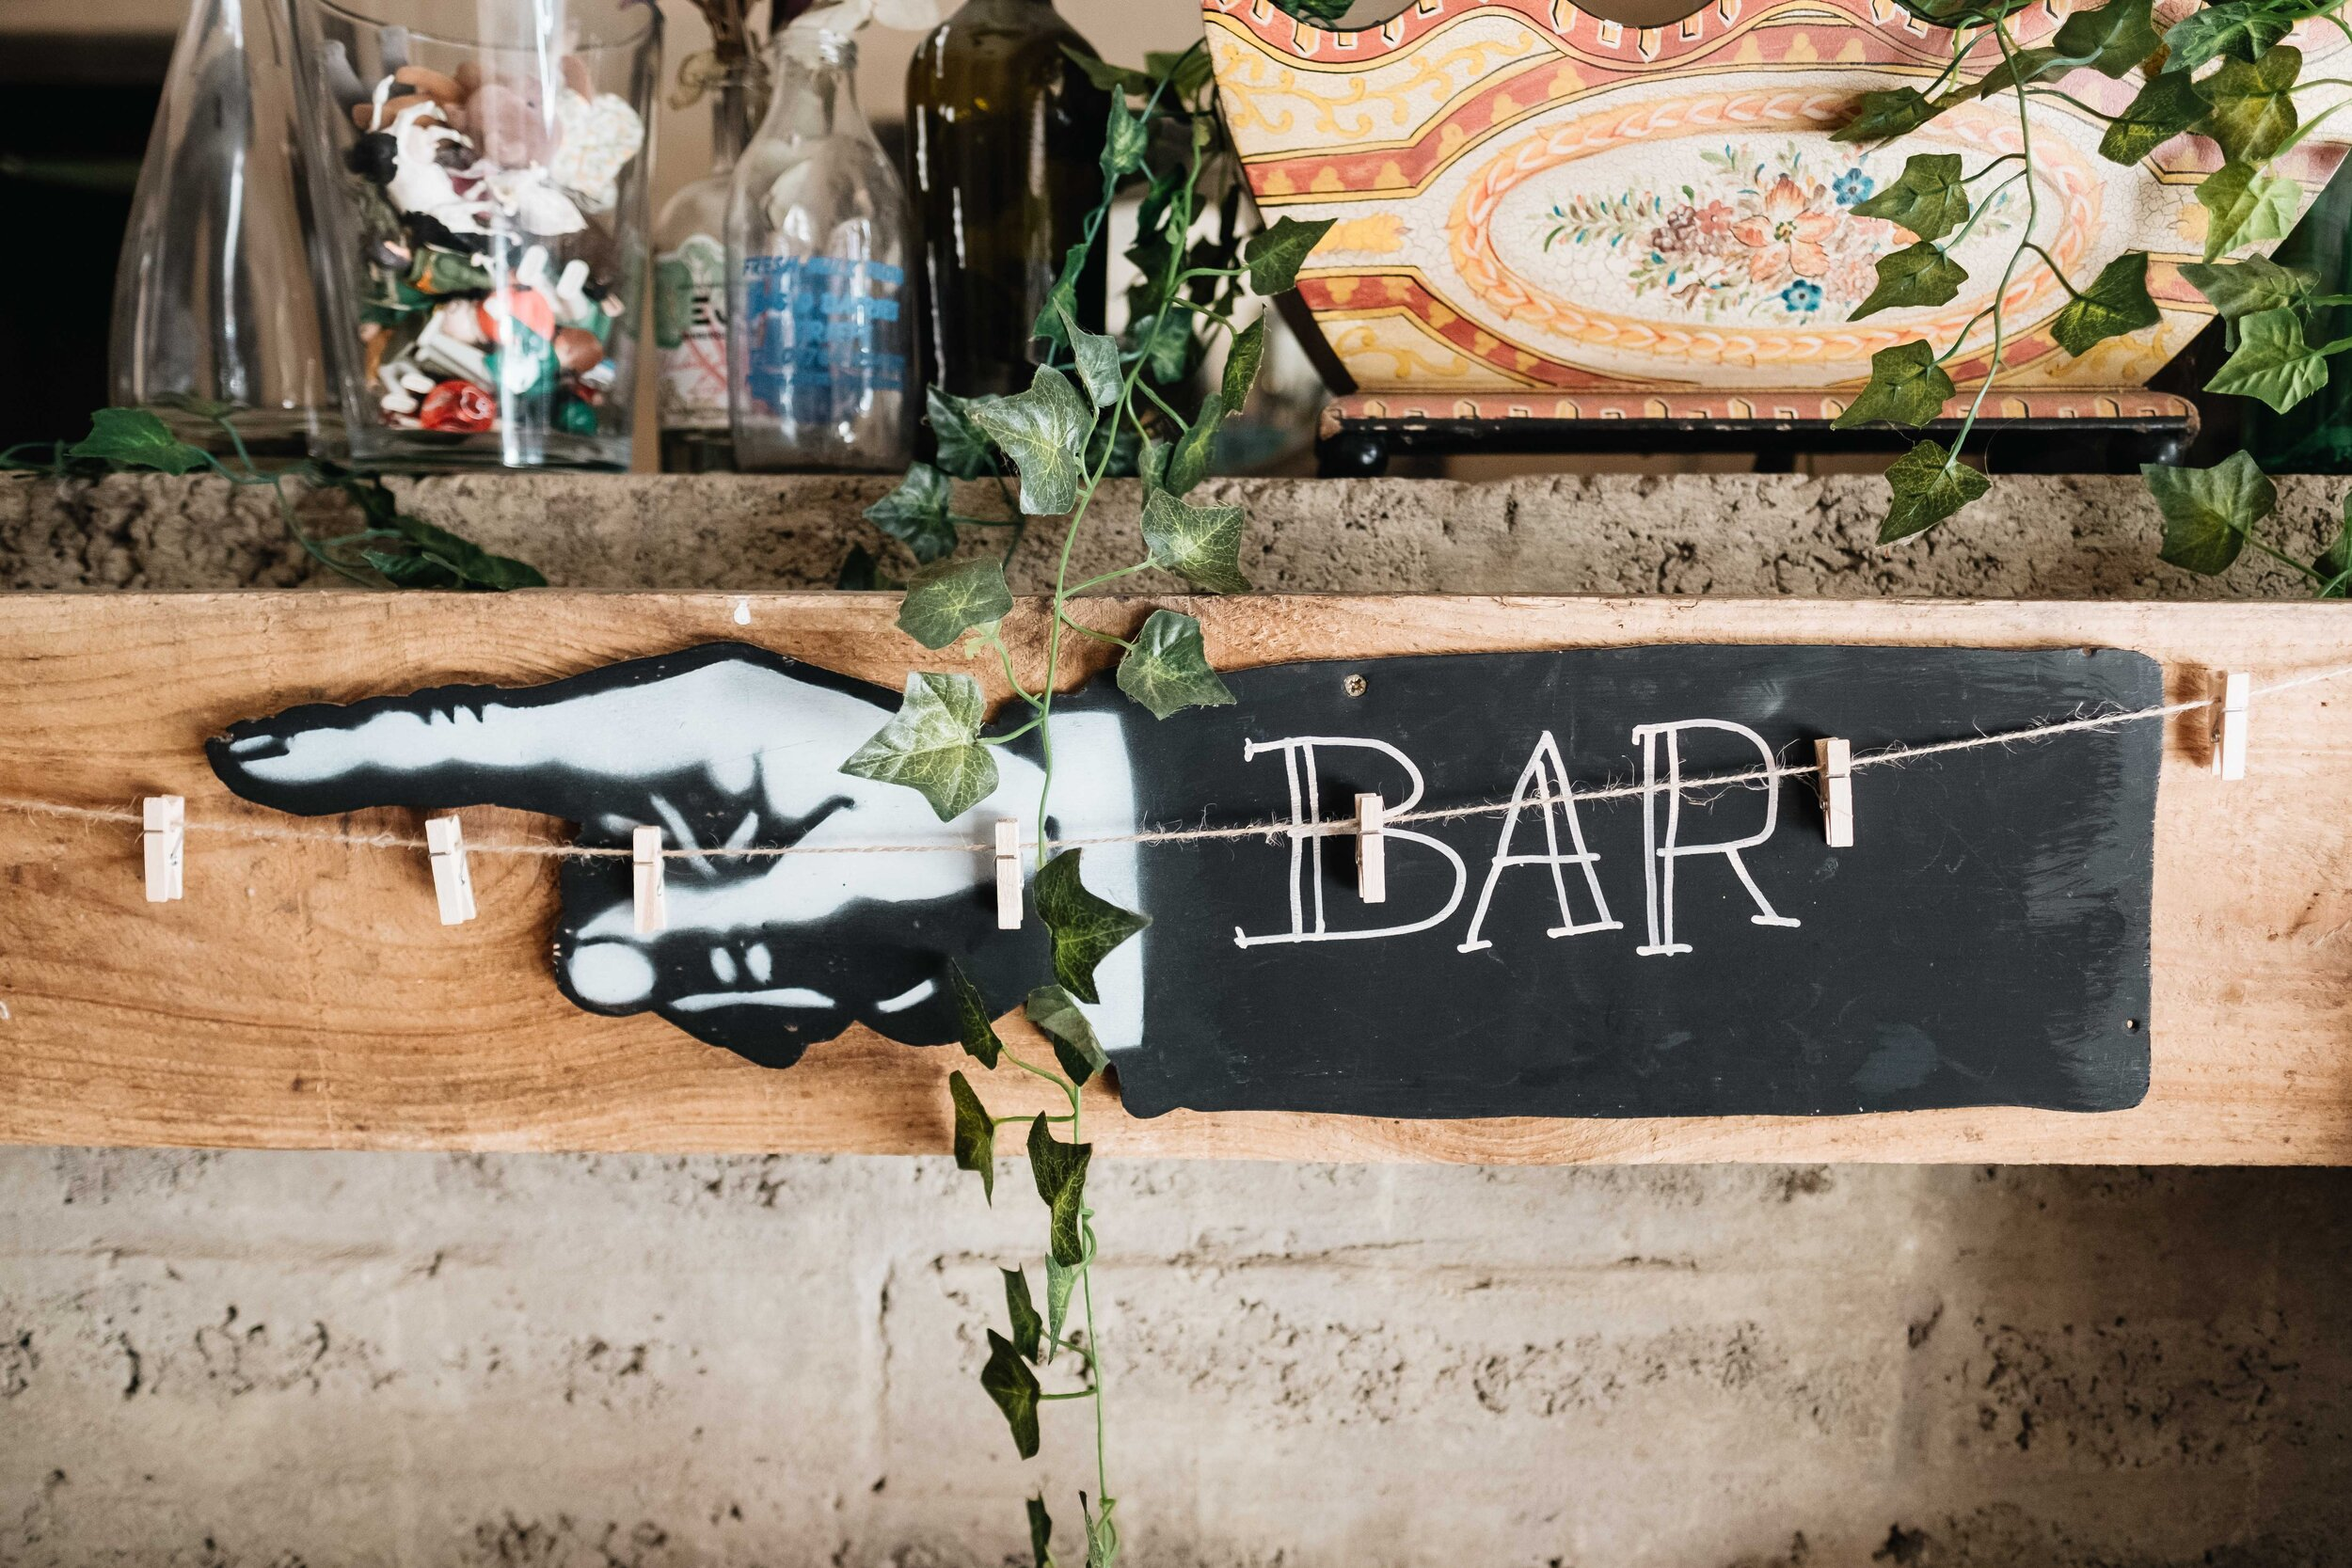 Sign pointing in the direction of the bar and in the shape of a pointing hand.